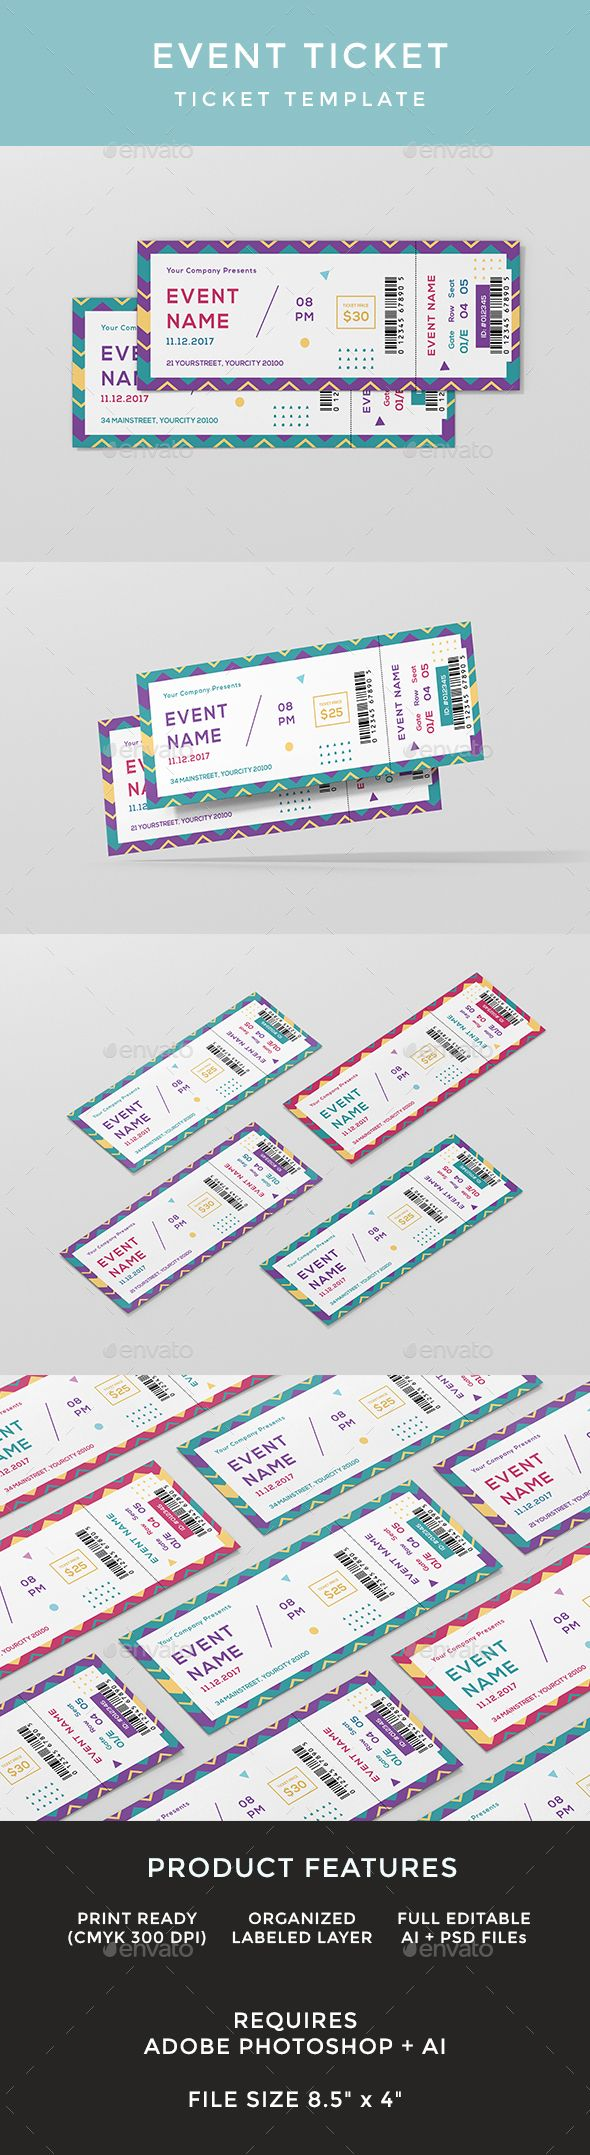 1000 ideas about ticket template on pinterest event ticket template ticket template free and. Black Bedroom Furniture Sets. Home Design Ideas